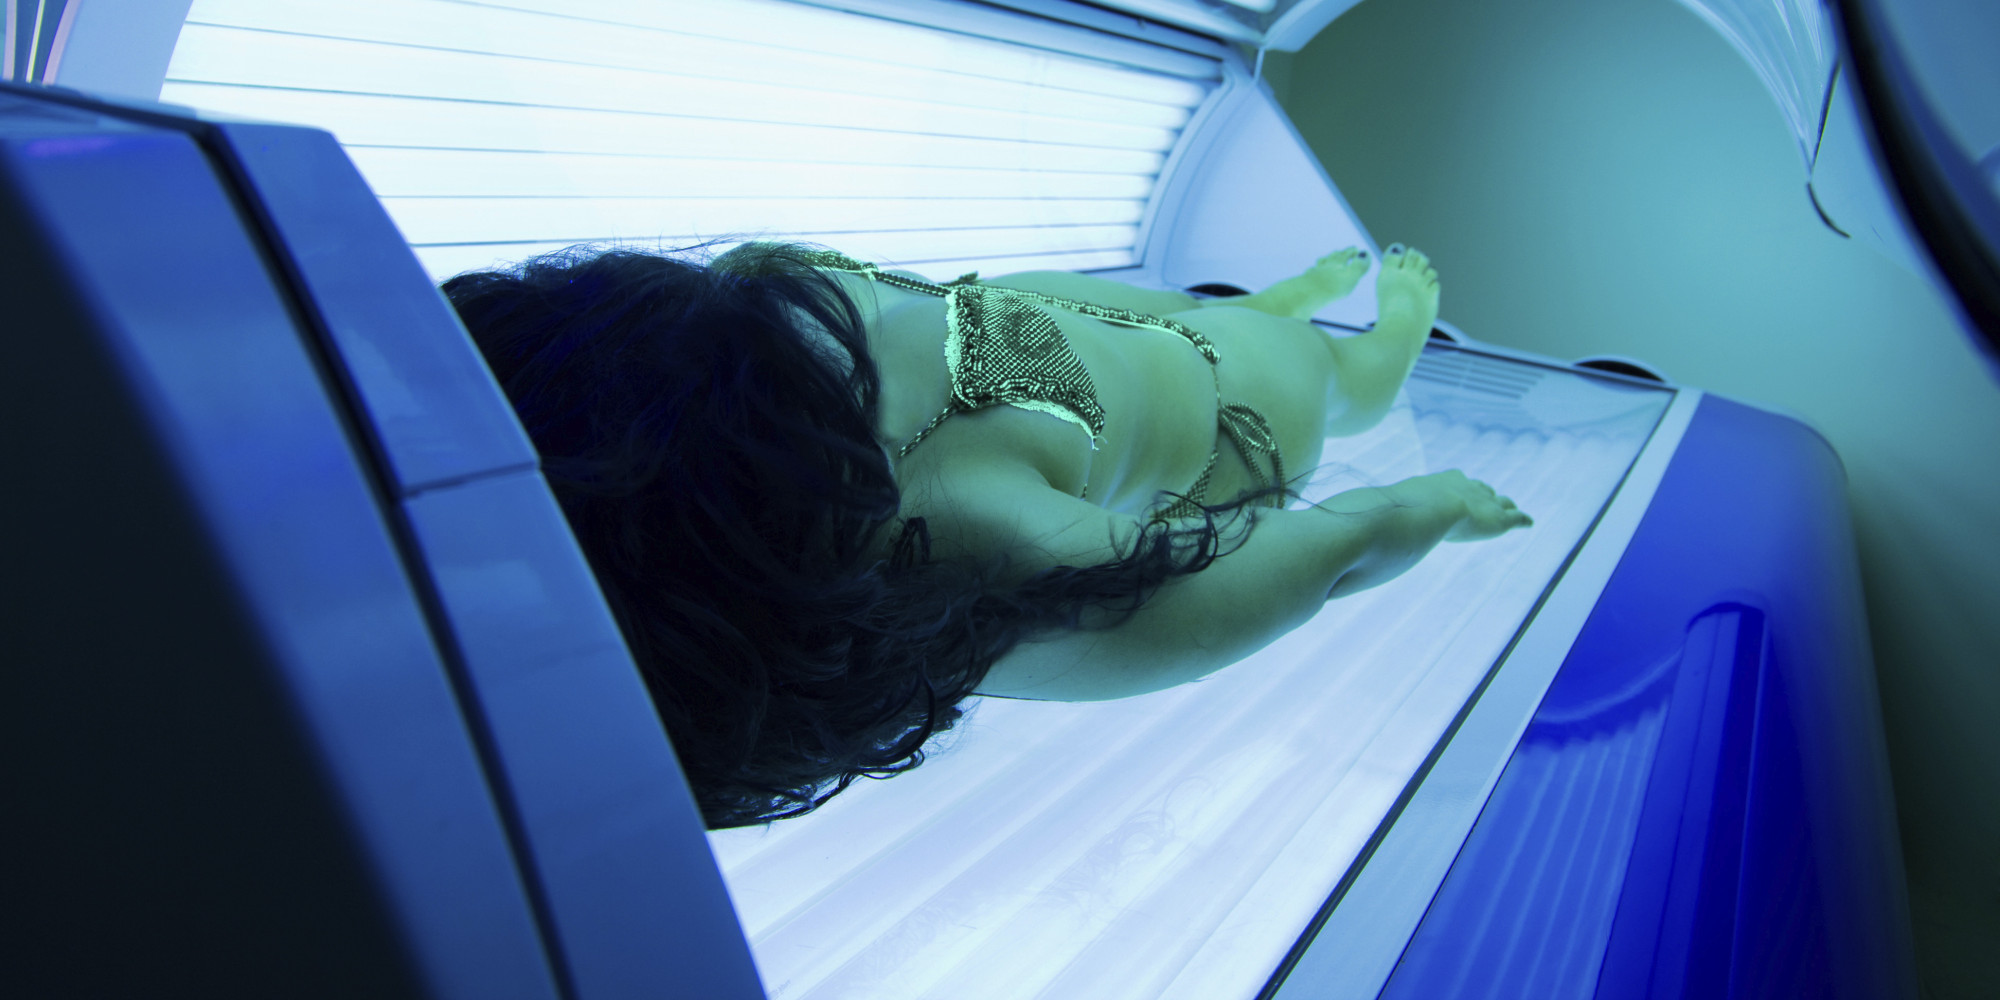 Reasons to shop at Amazing Tanning Lotions: